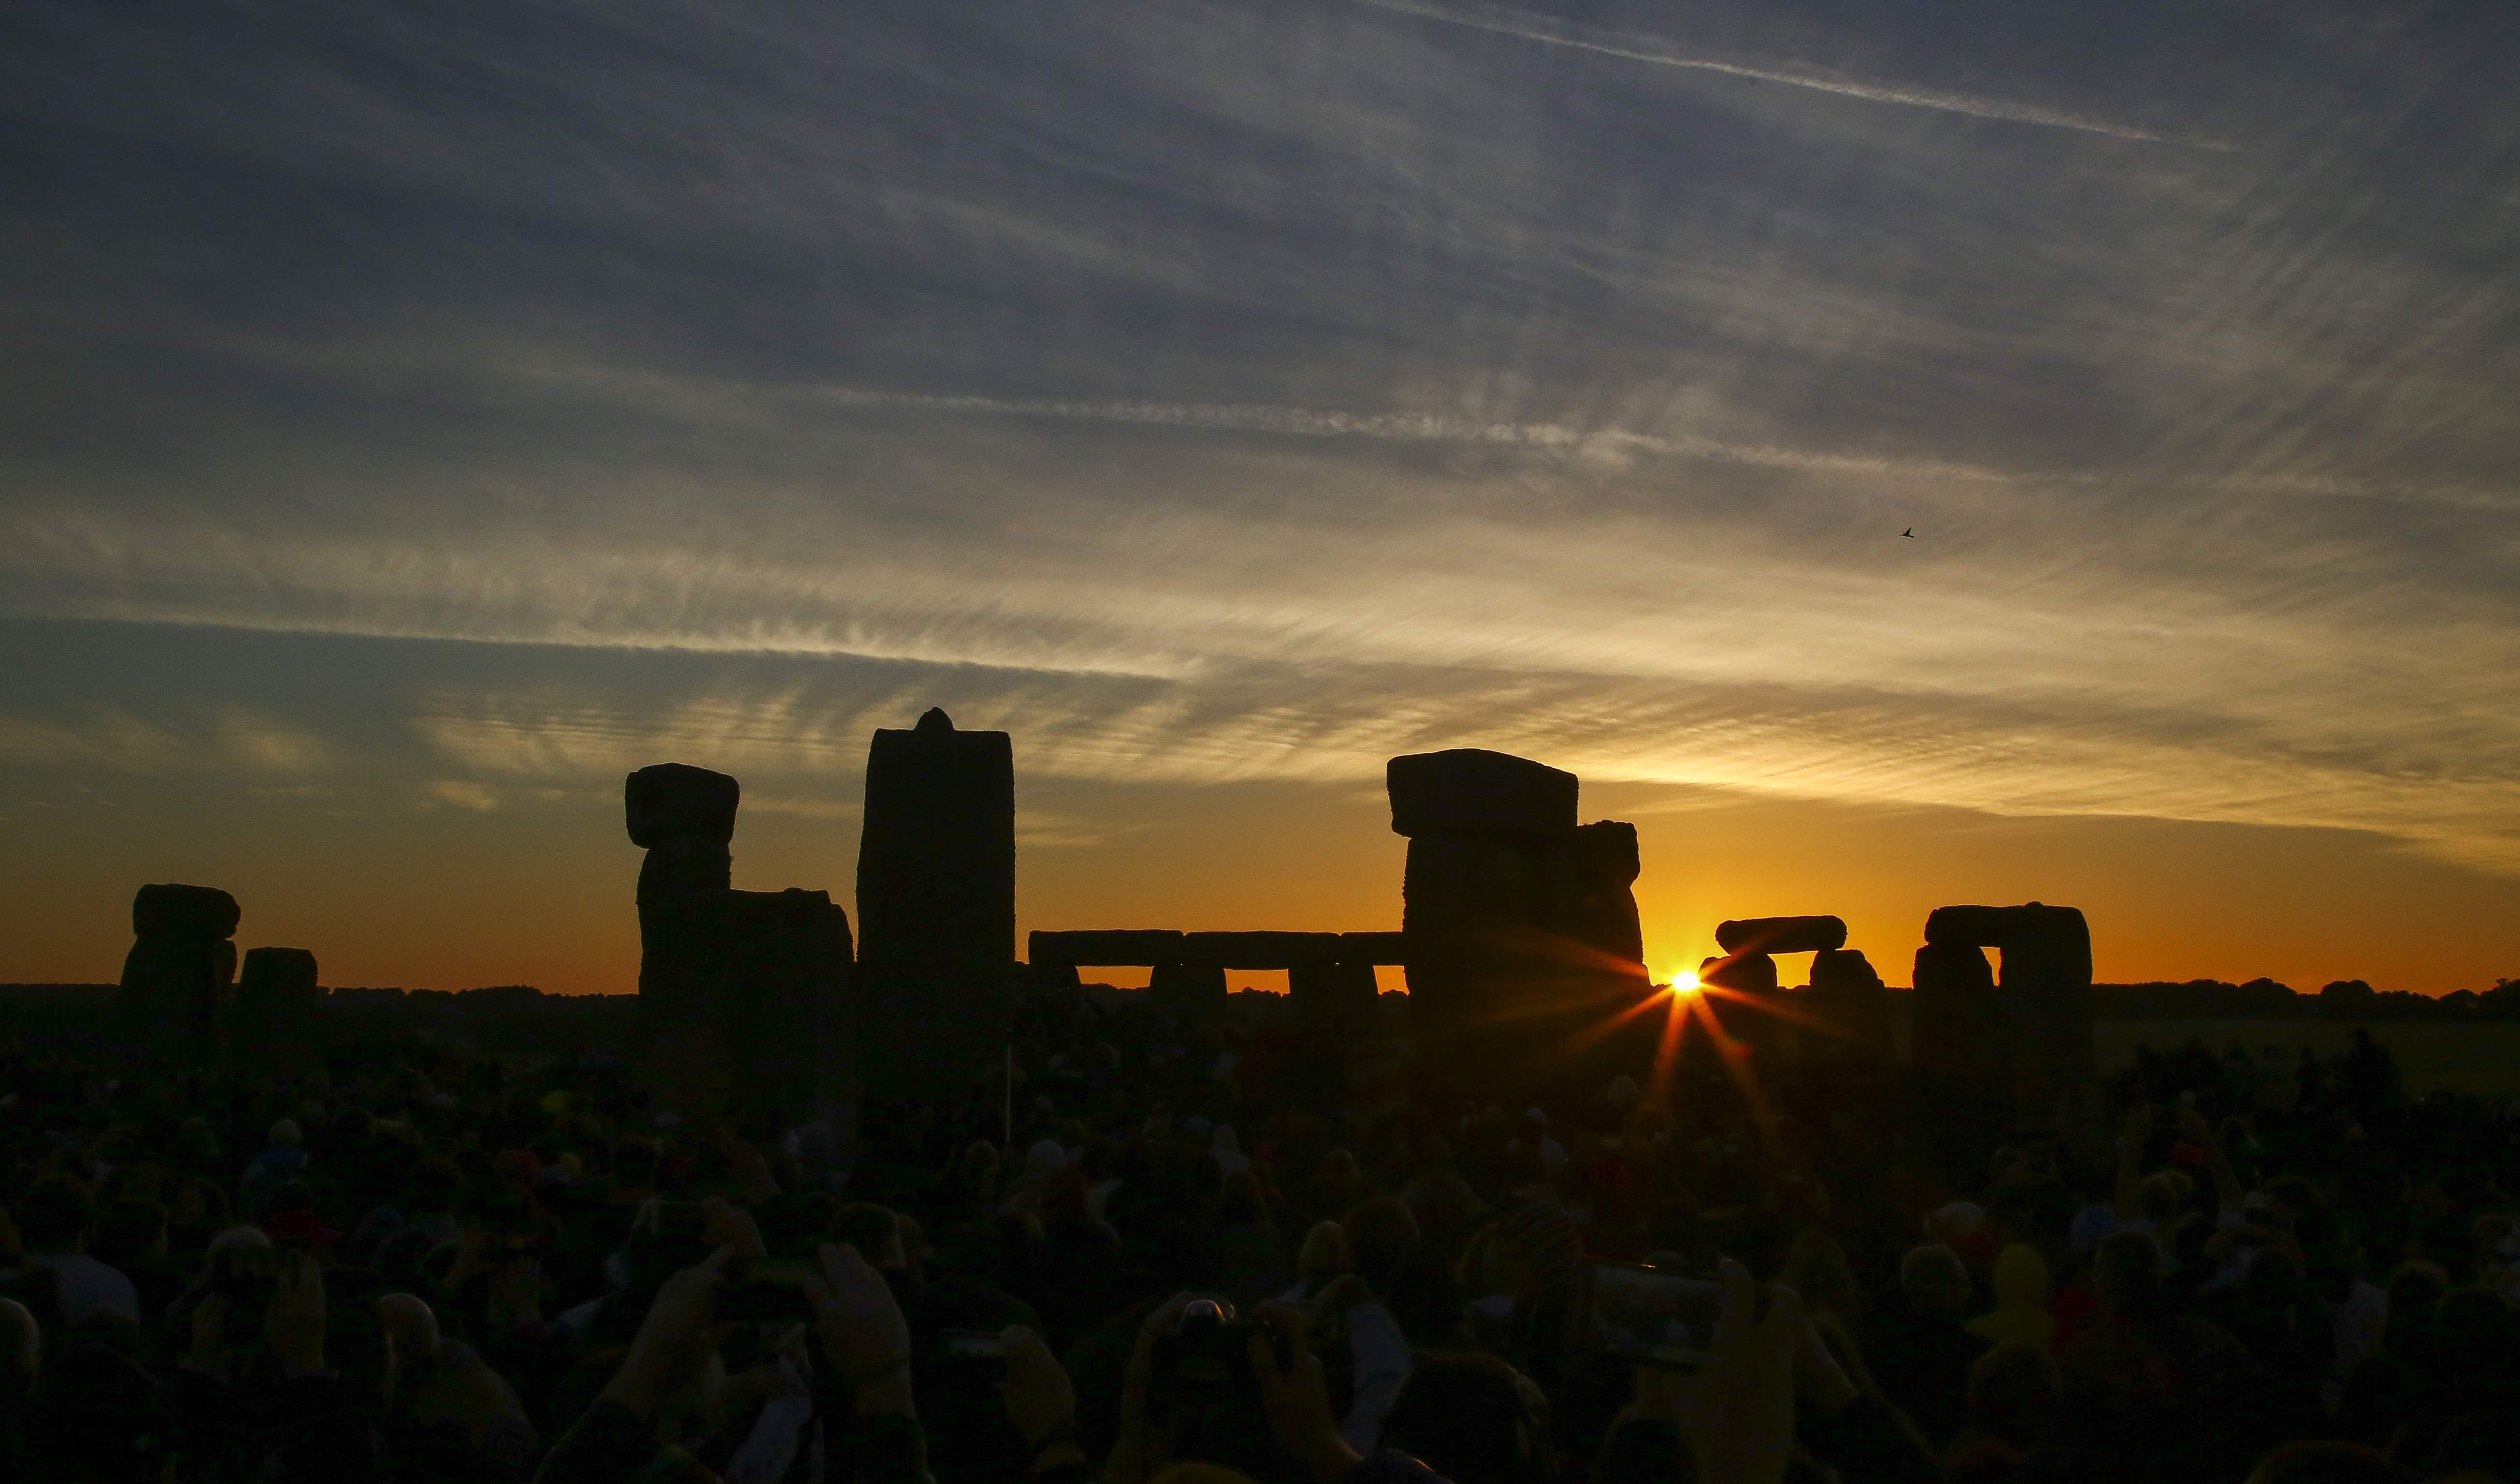 Revellers watch the sunrise as they celebrate the pagan festival of Summer Solstice at Stonehenge in Wiltshire,  England on June 21, 2018.  The festival, which dates back thousands of years, celebrates the longest day of the year when the sun is at it